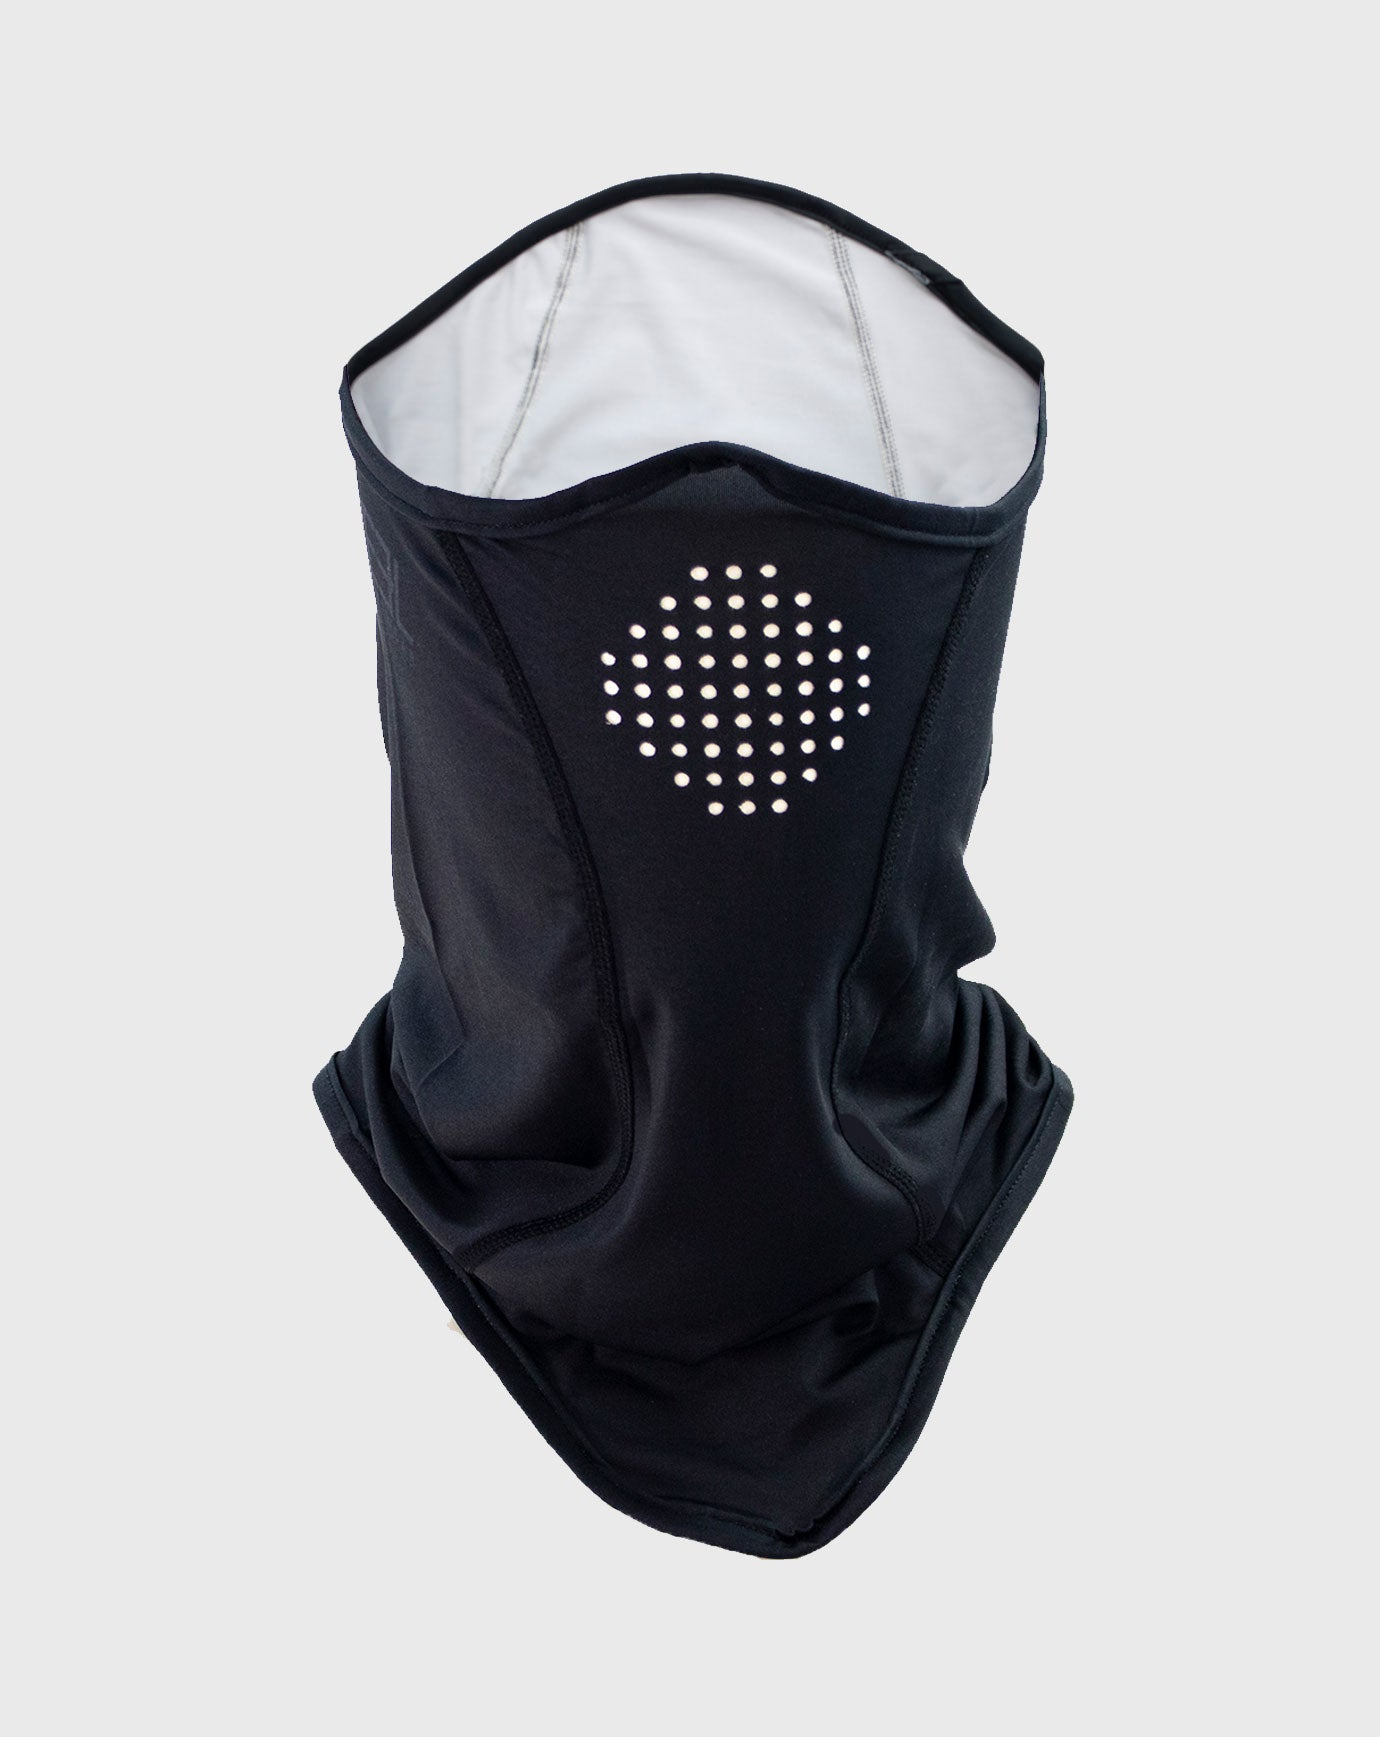 Solar Fishing Face mask with holes